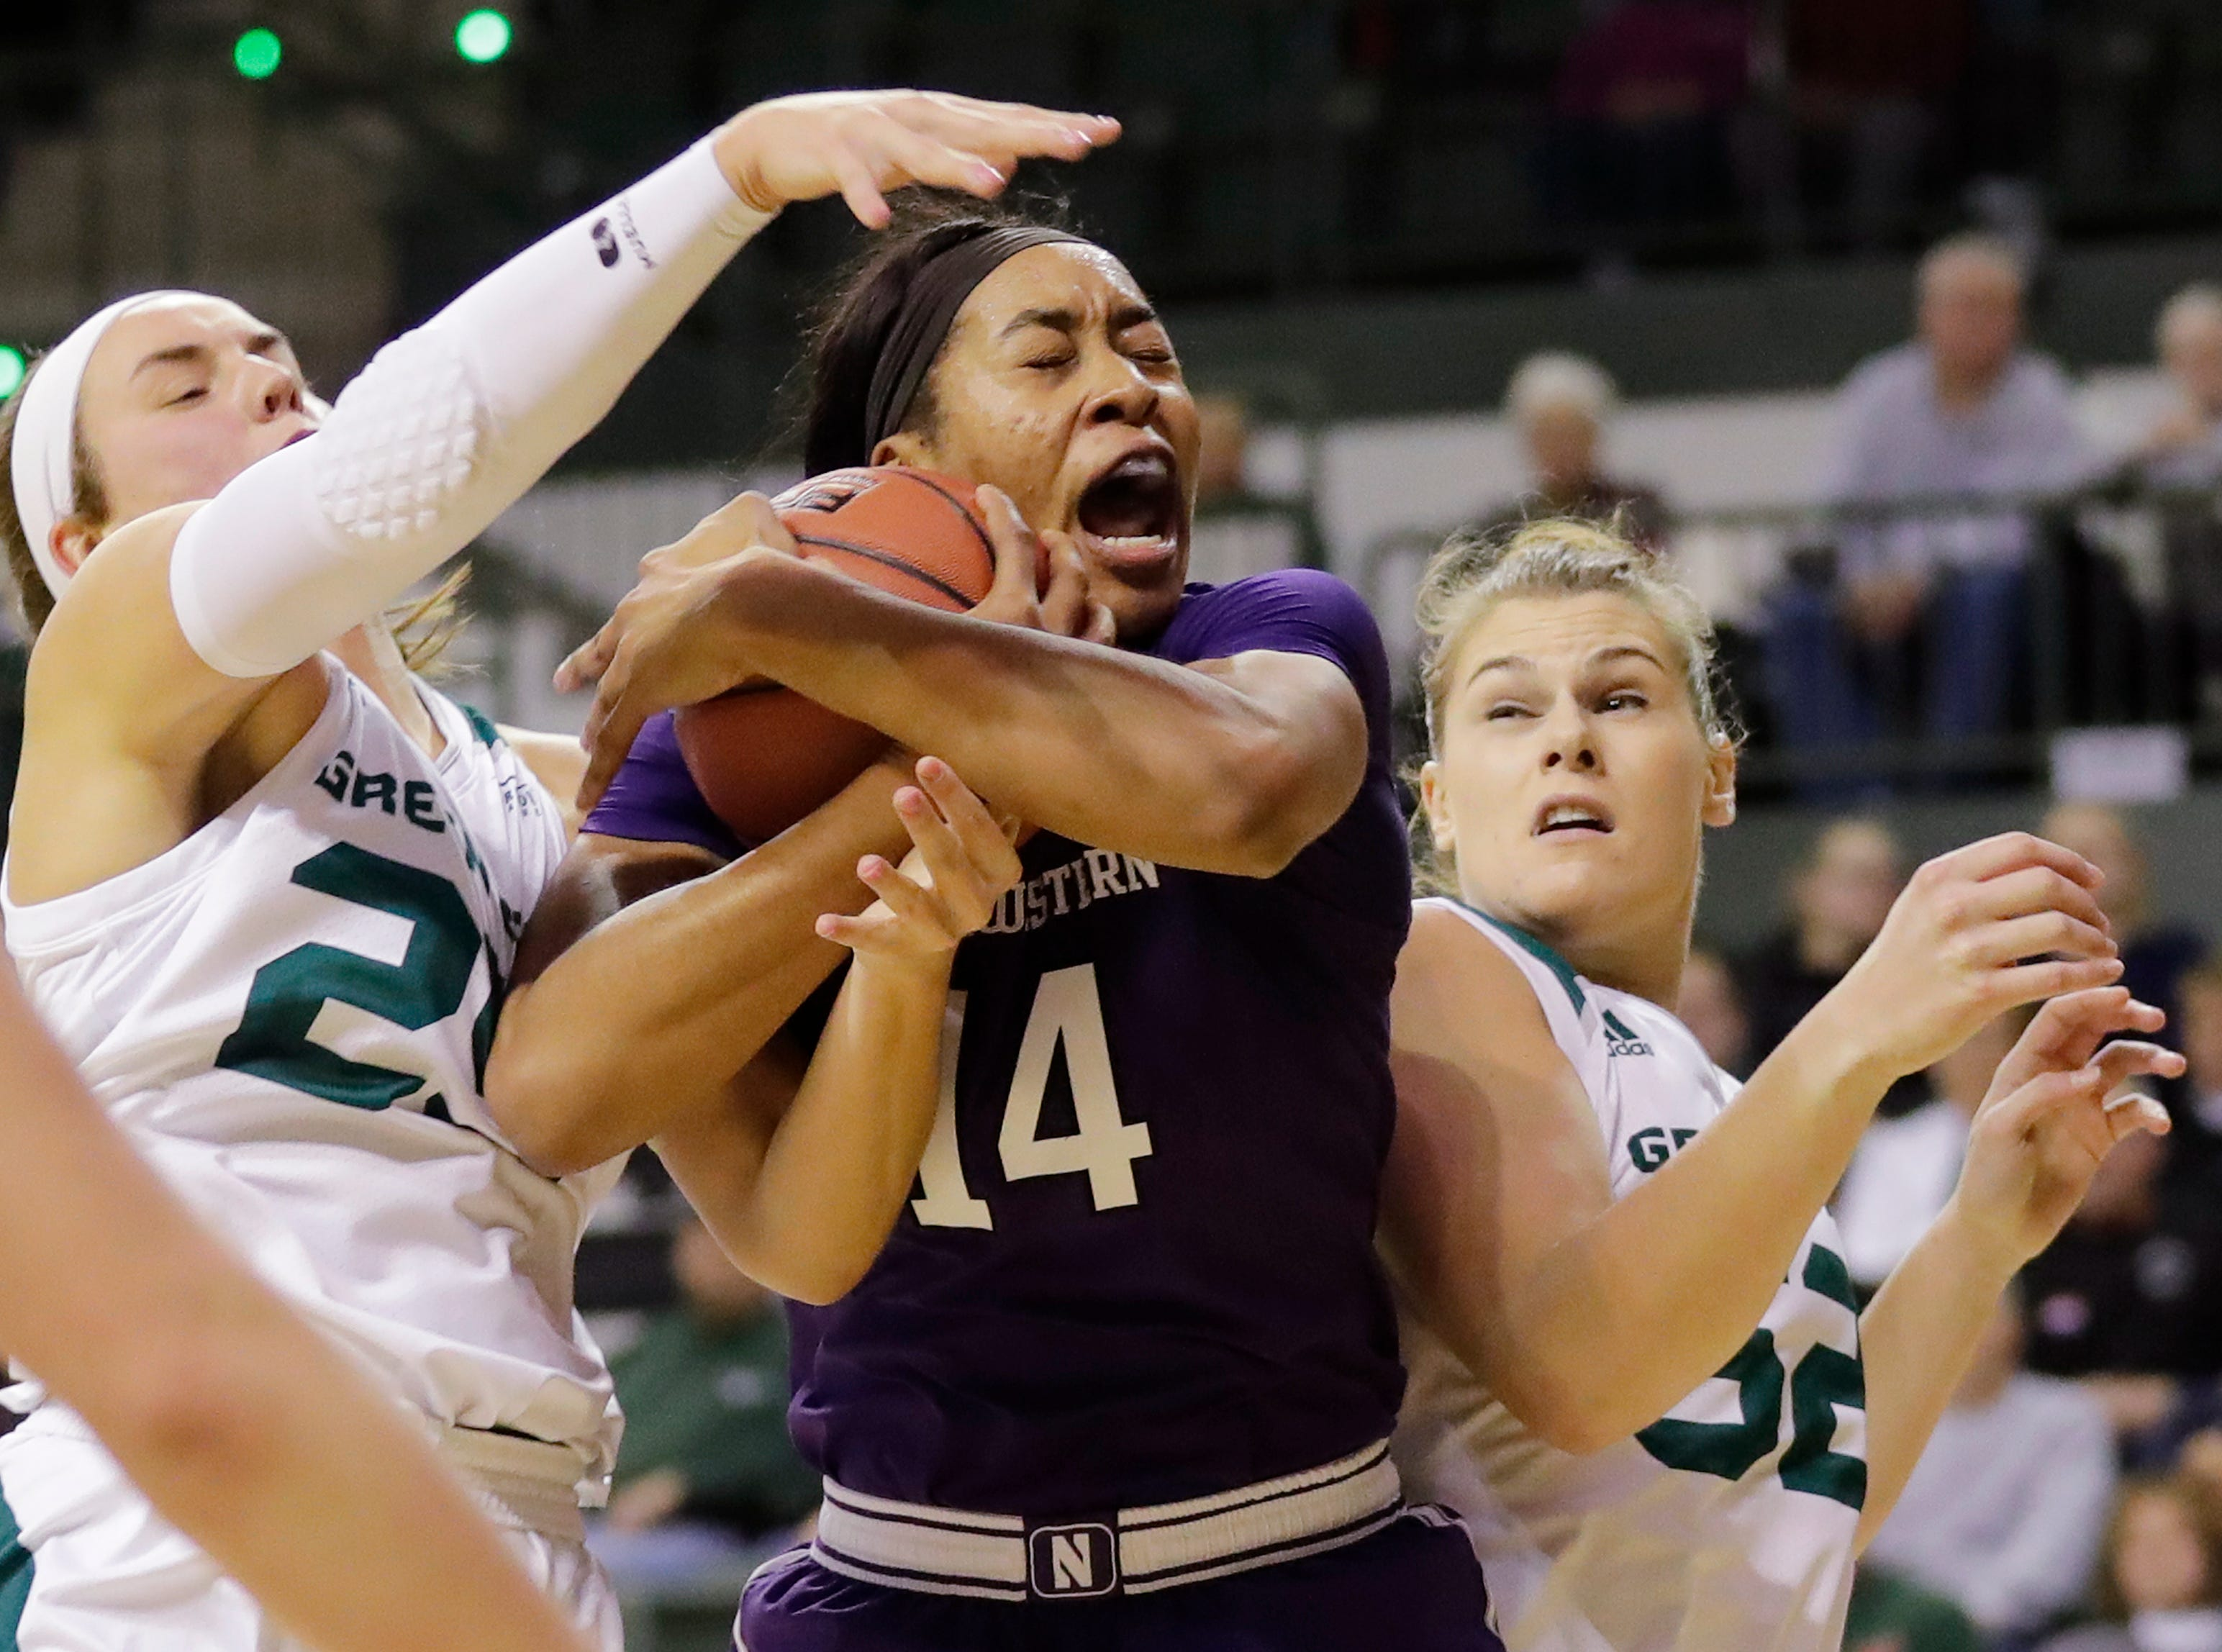 Northwestern Wildcats forward Pallas Kunaiyi-Akpanah (14) gets a rebound against the Green Bay Phoenix in a women's NCAA basketball game at the Kress Center on Tuesday, November 6, 2018 in Green Bay, Wis.